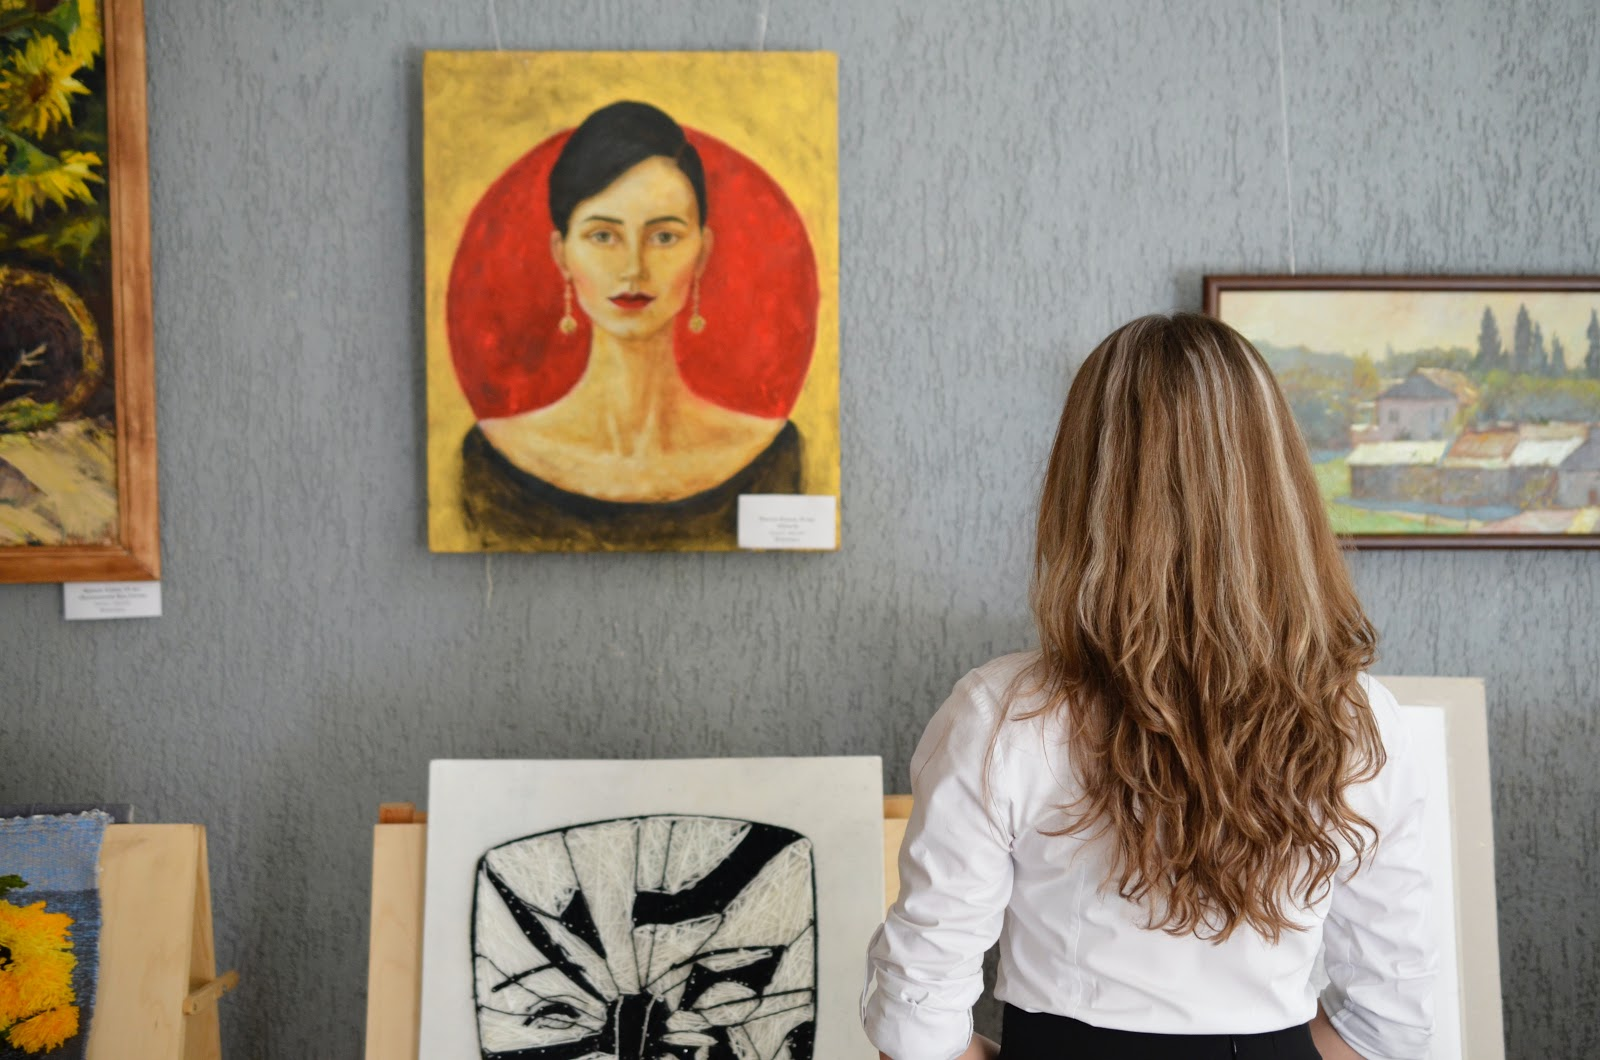 A woman views a painting of another woman in front of a yellow and orange background.